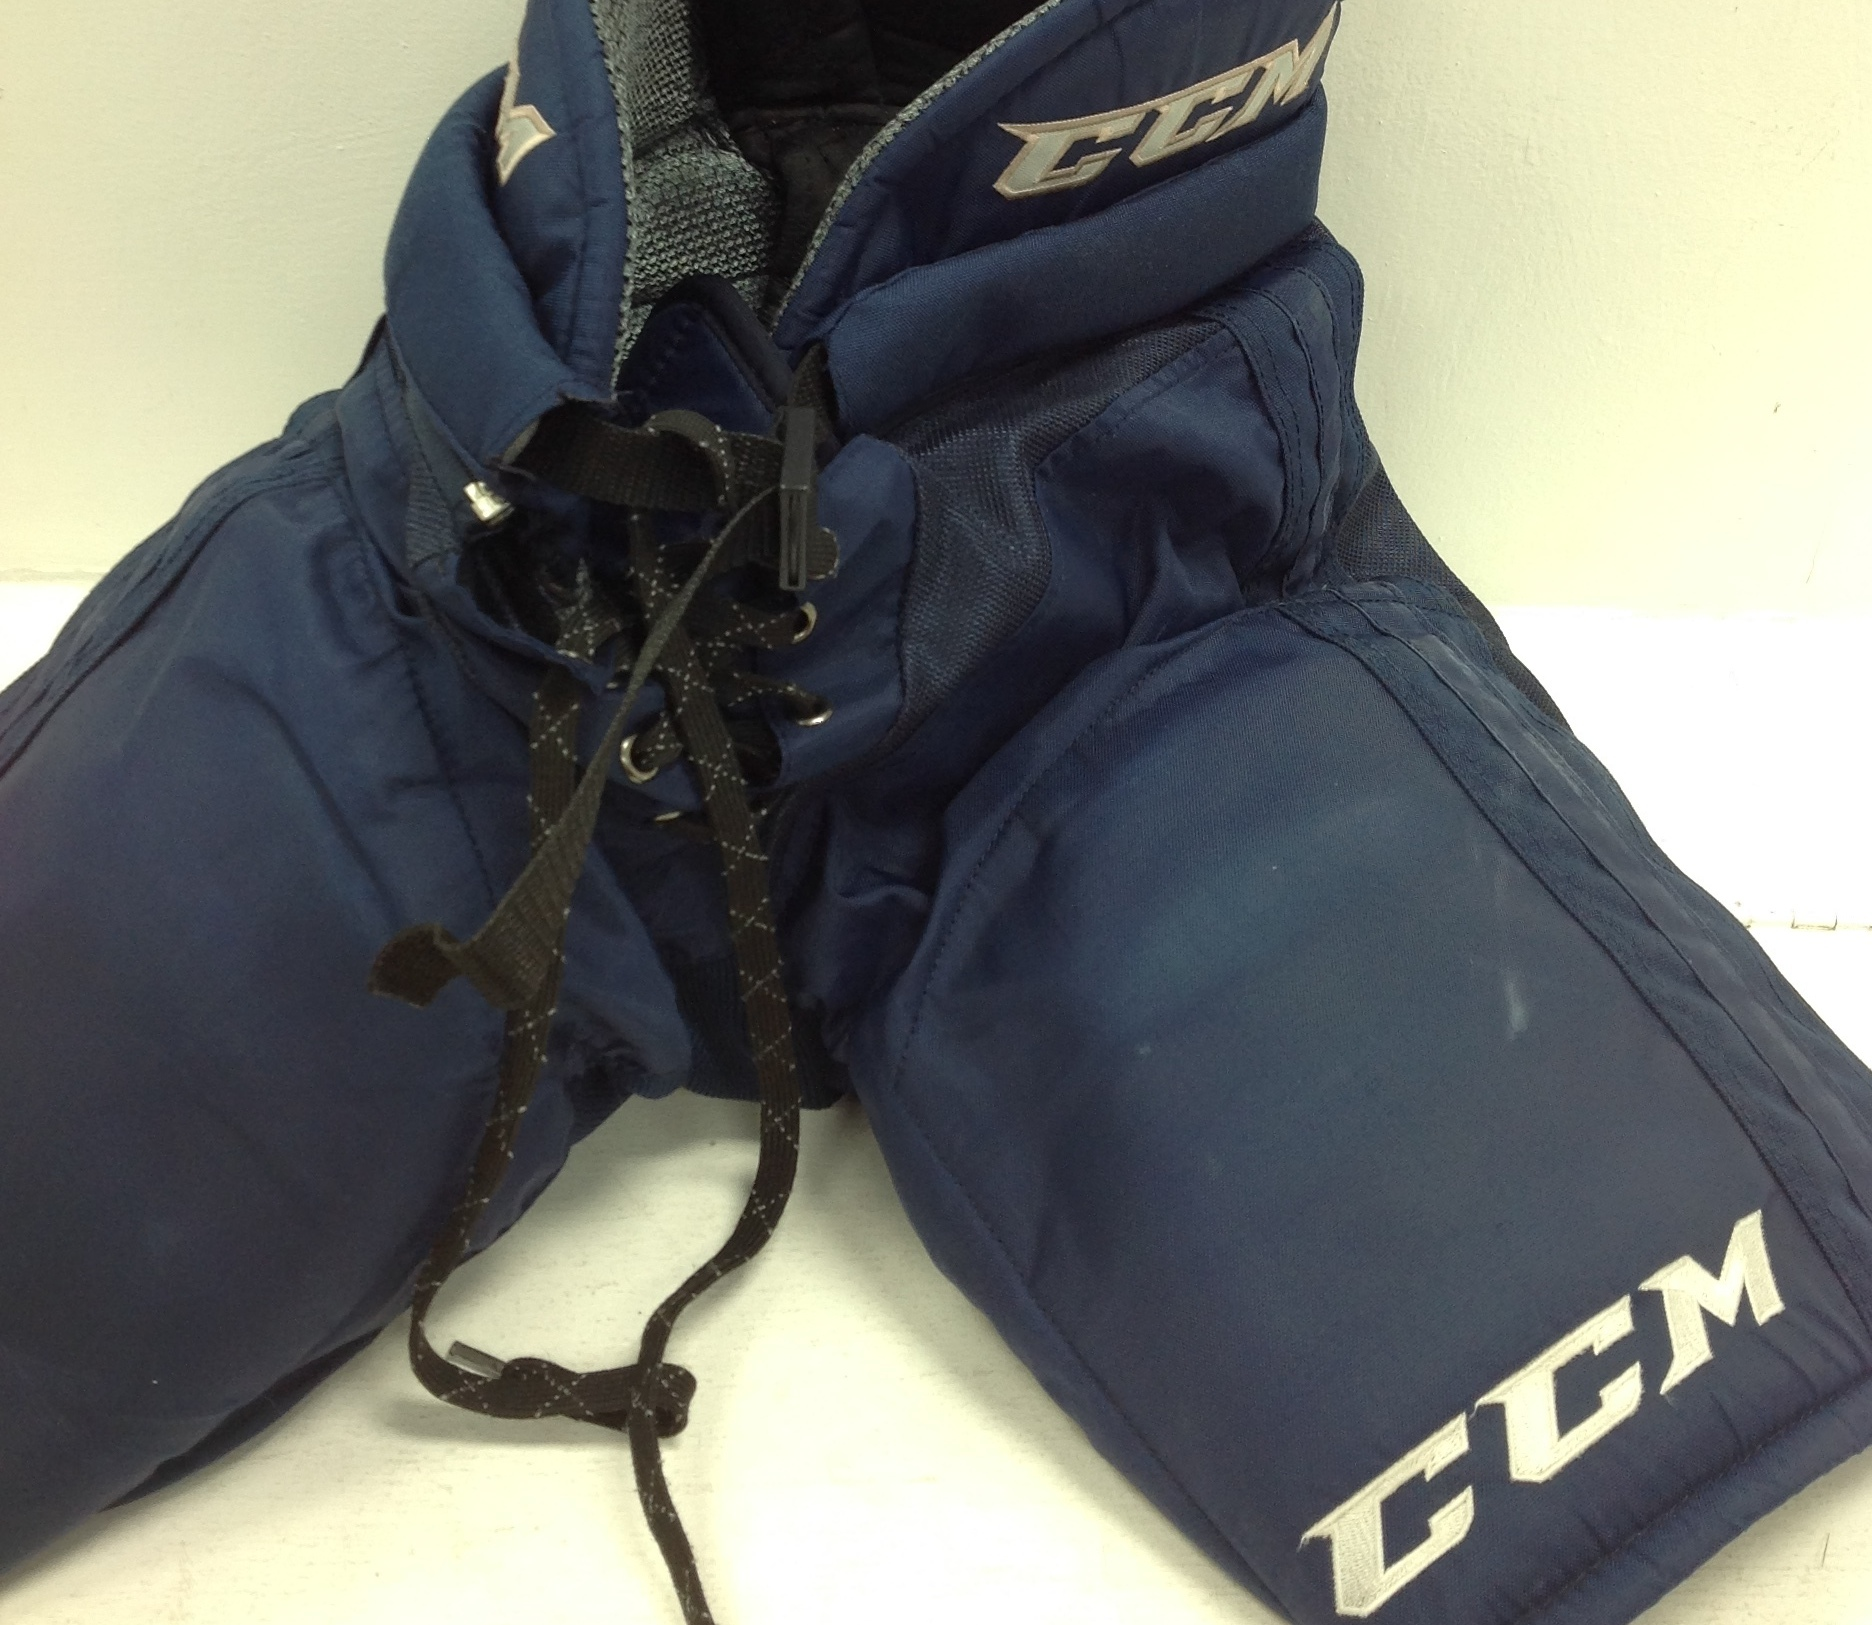 CCM RBZ LE PANTS JR MEDIUM HOCKEY PANTS